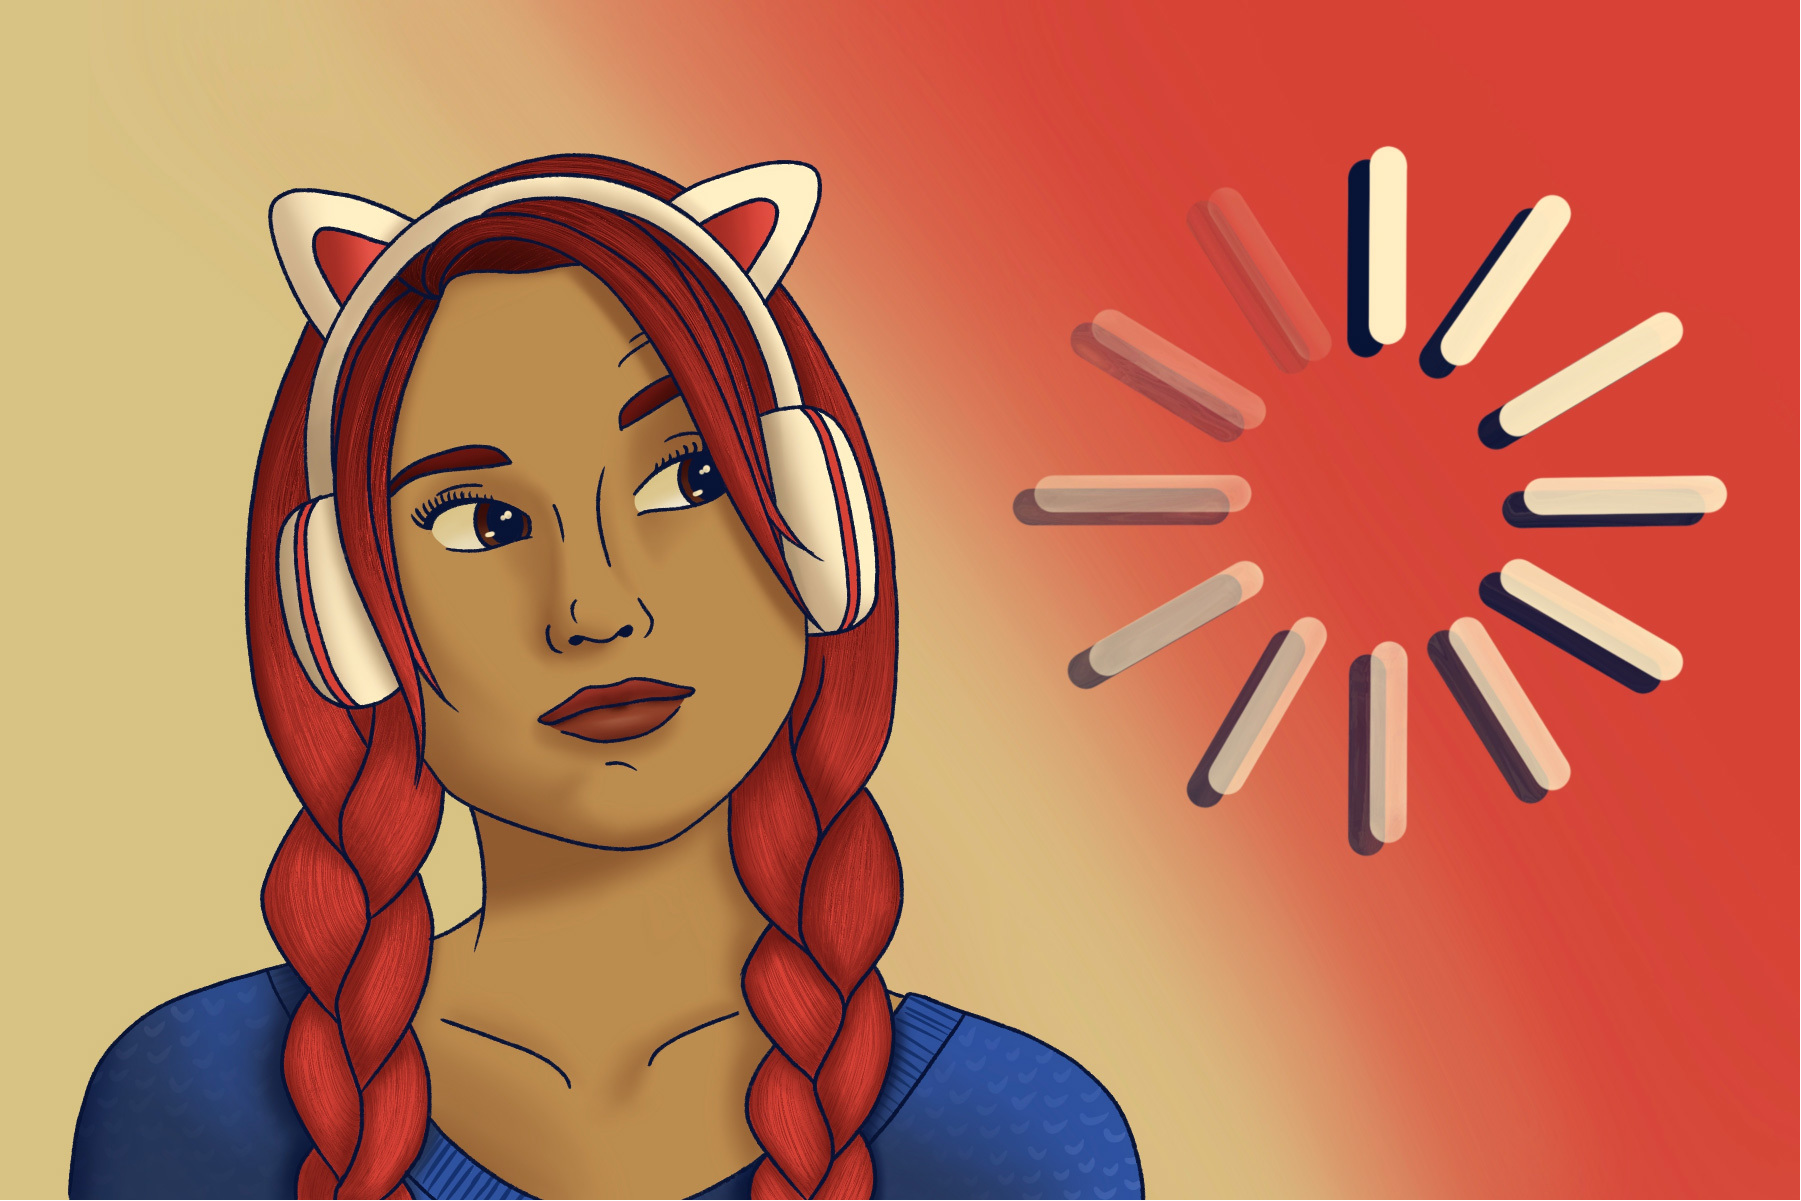 in an article about games similar to monster hunter rise, an illustration of a girl with headphones and cat ears looking at a loading symbol